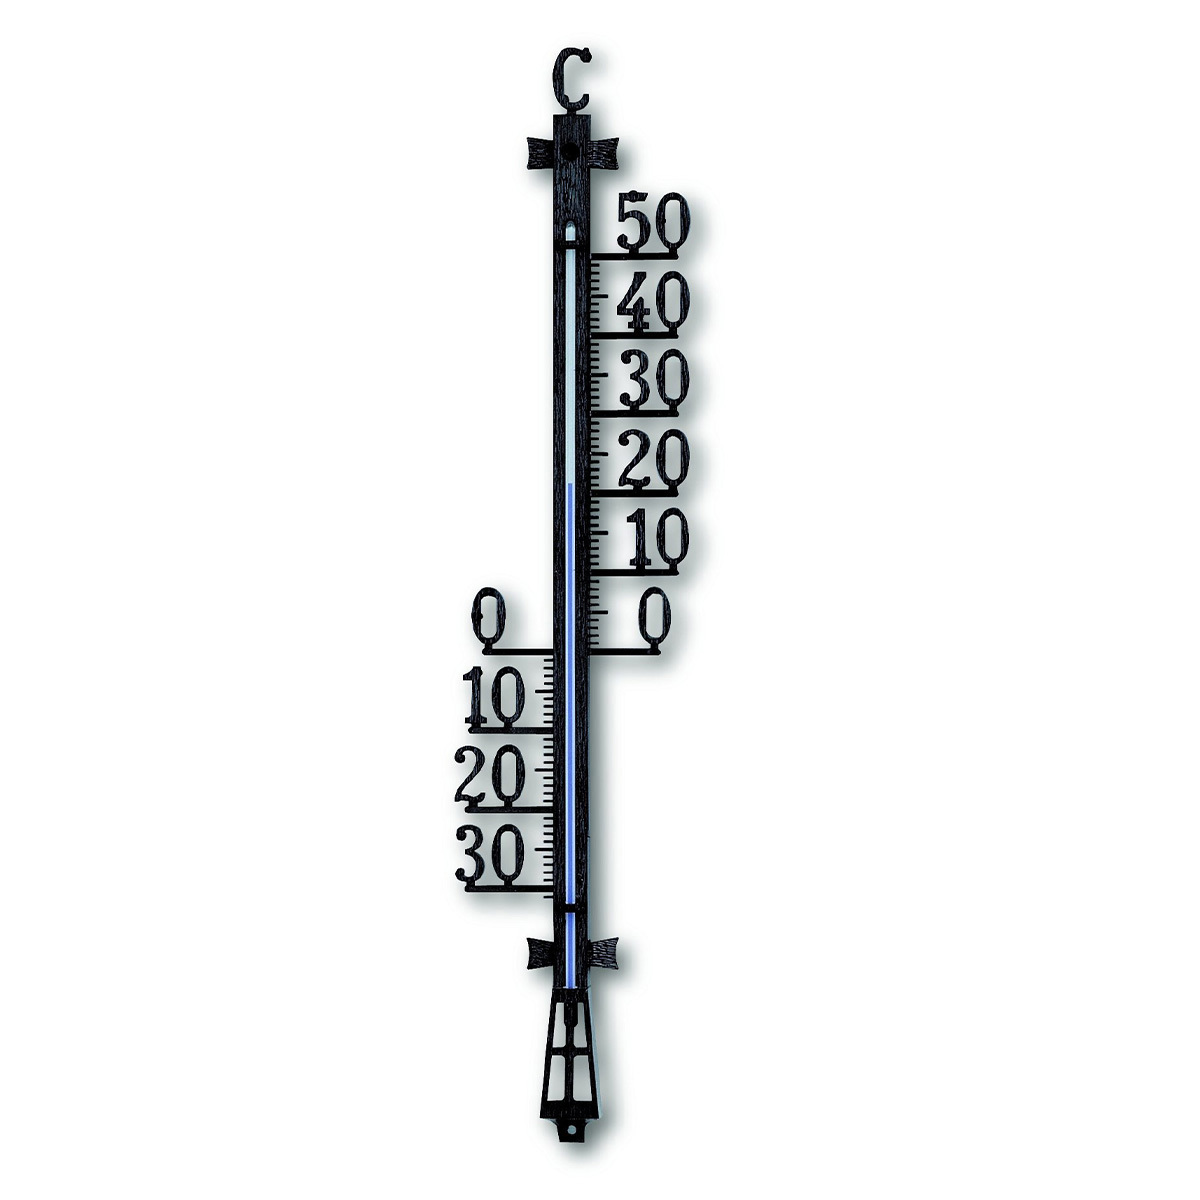 12-6008-analoges-aussenthermometer-1200x1200px.jpg